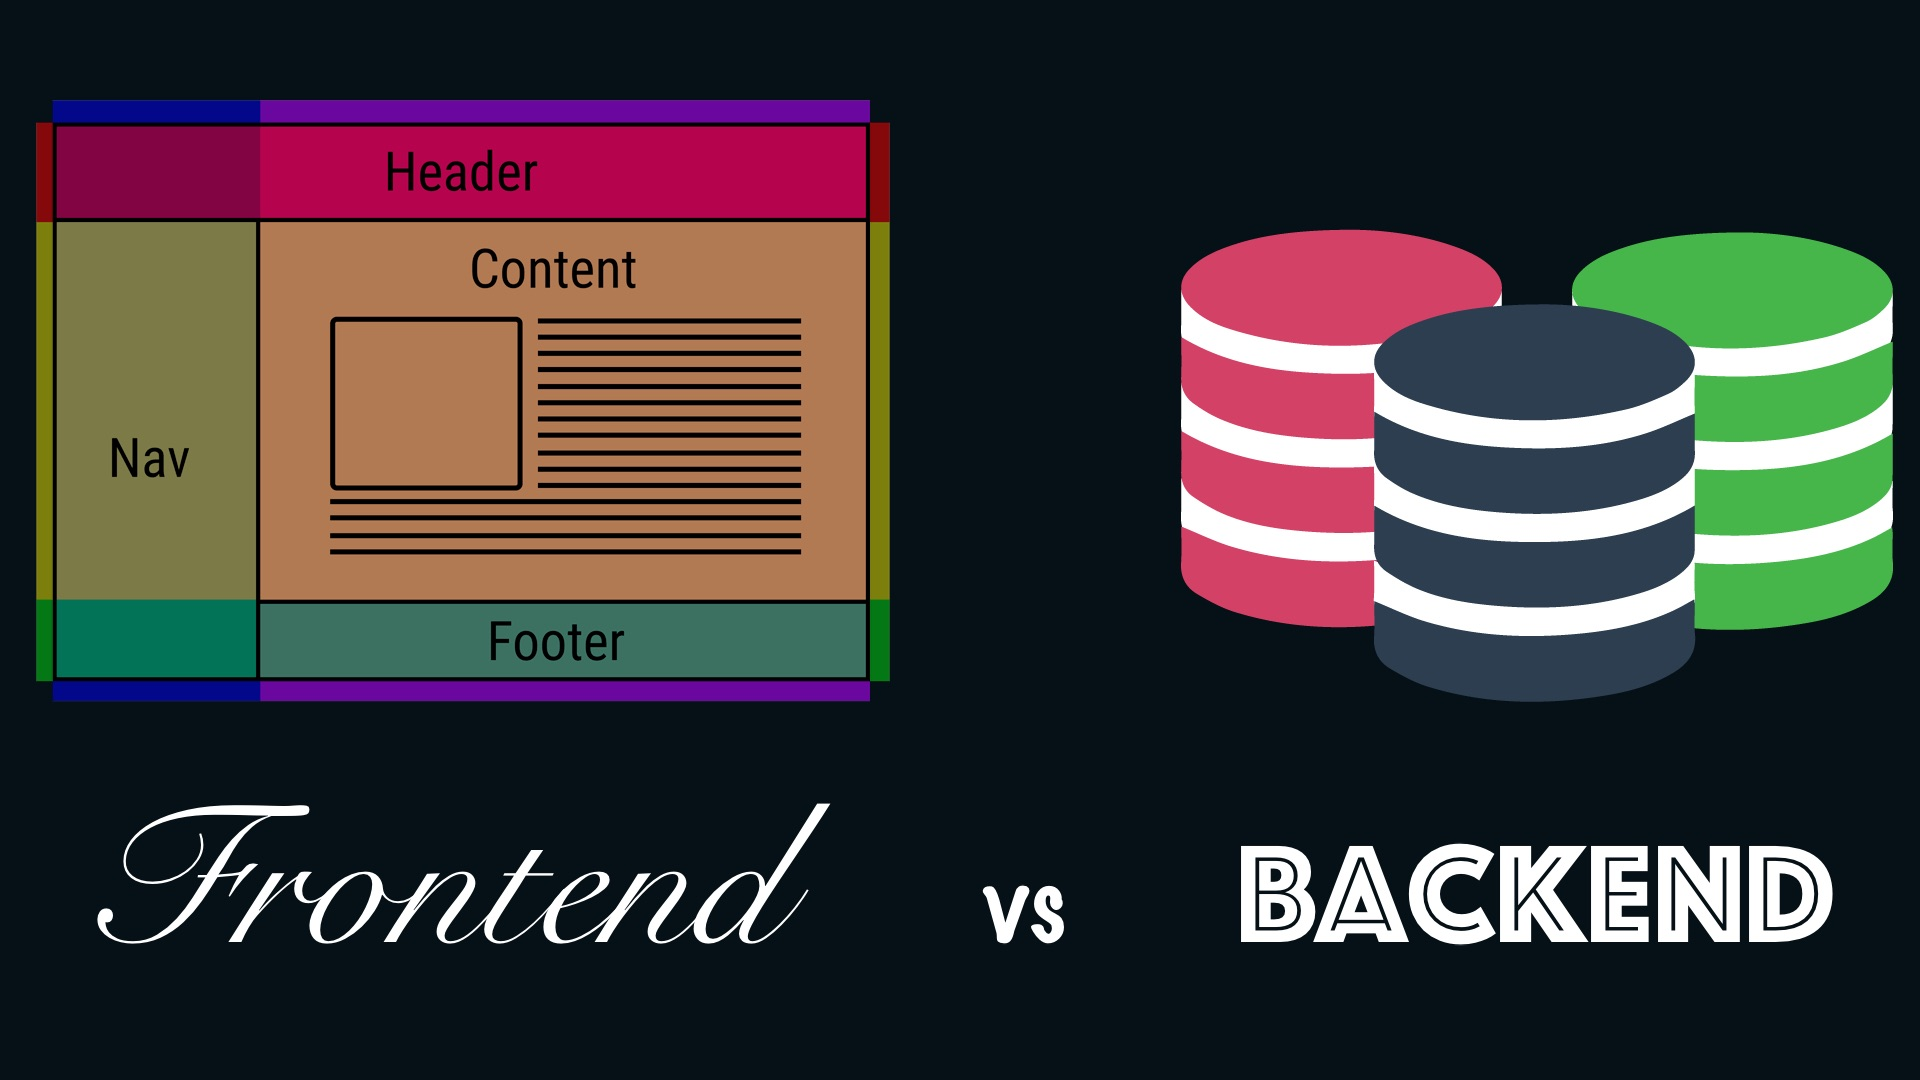 /how-to-choose-between-a-career-in-frontend-vs-backend-u44q33dw feature image